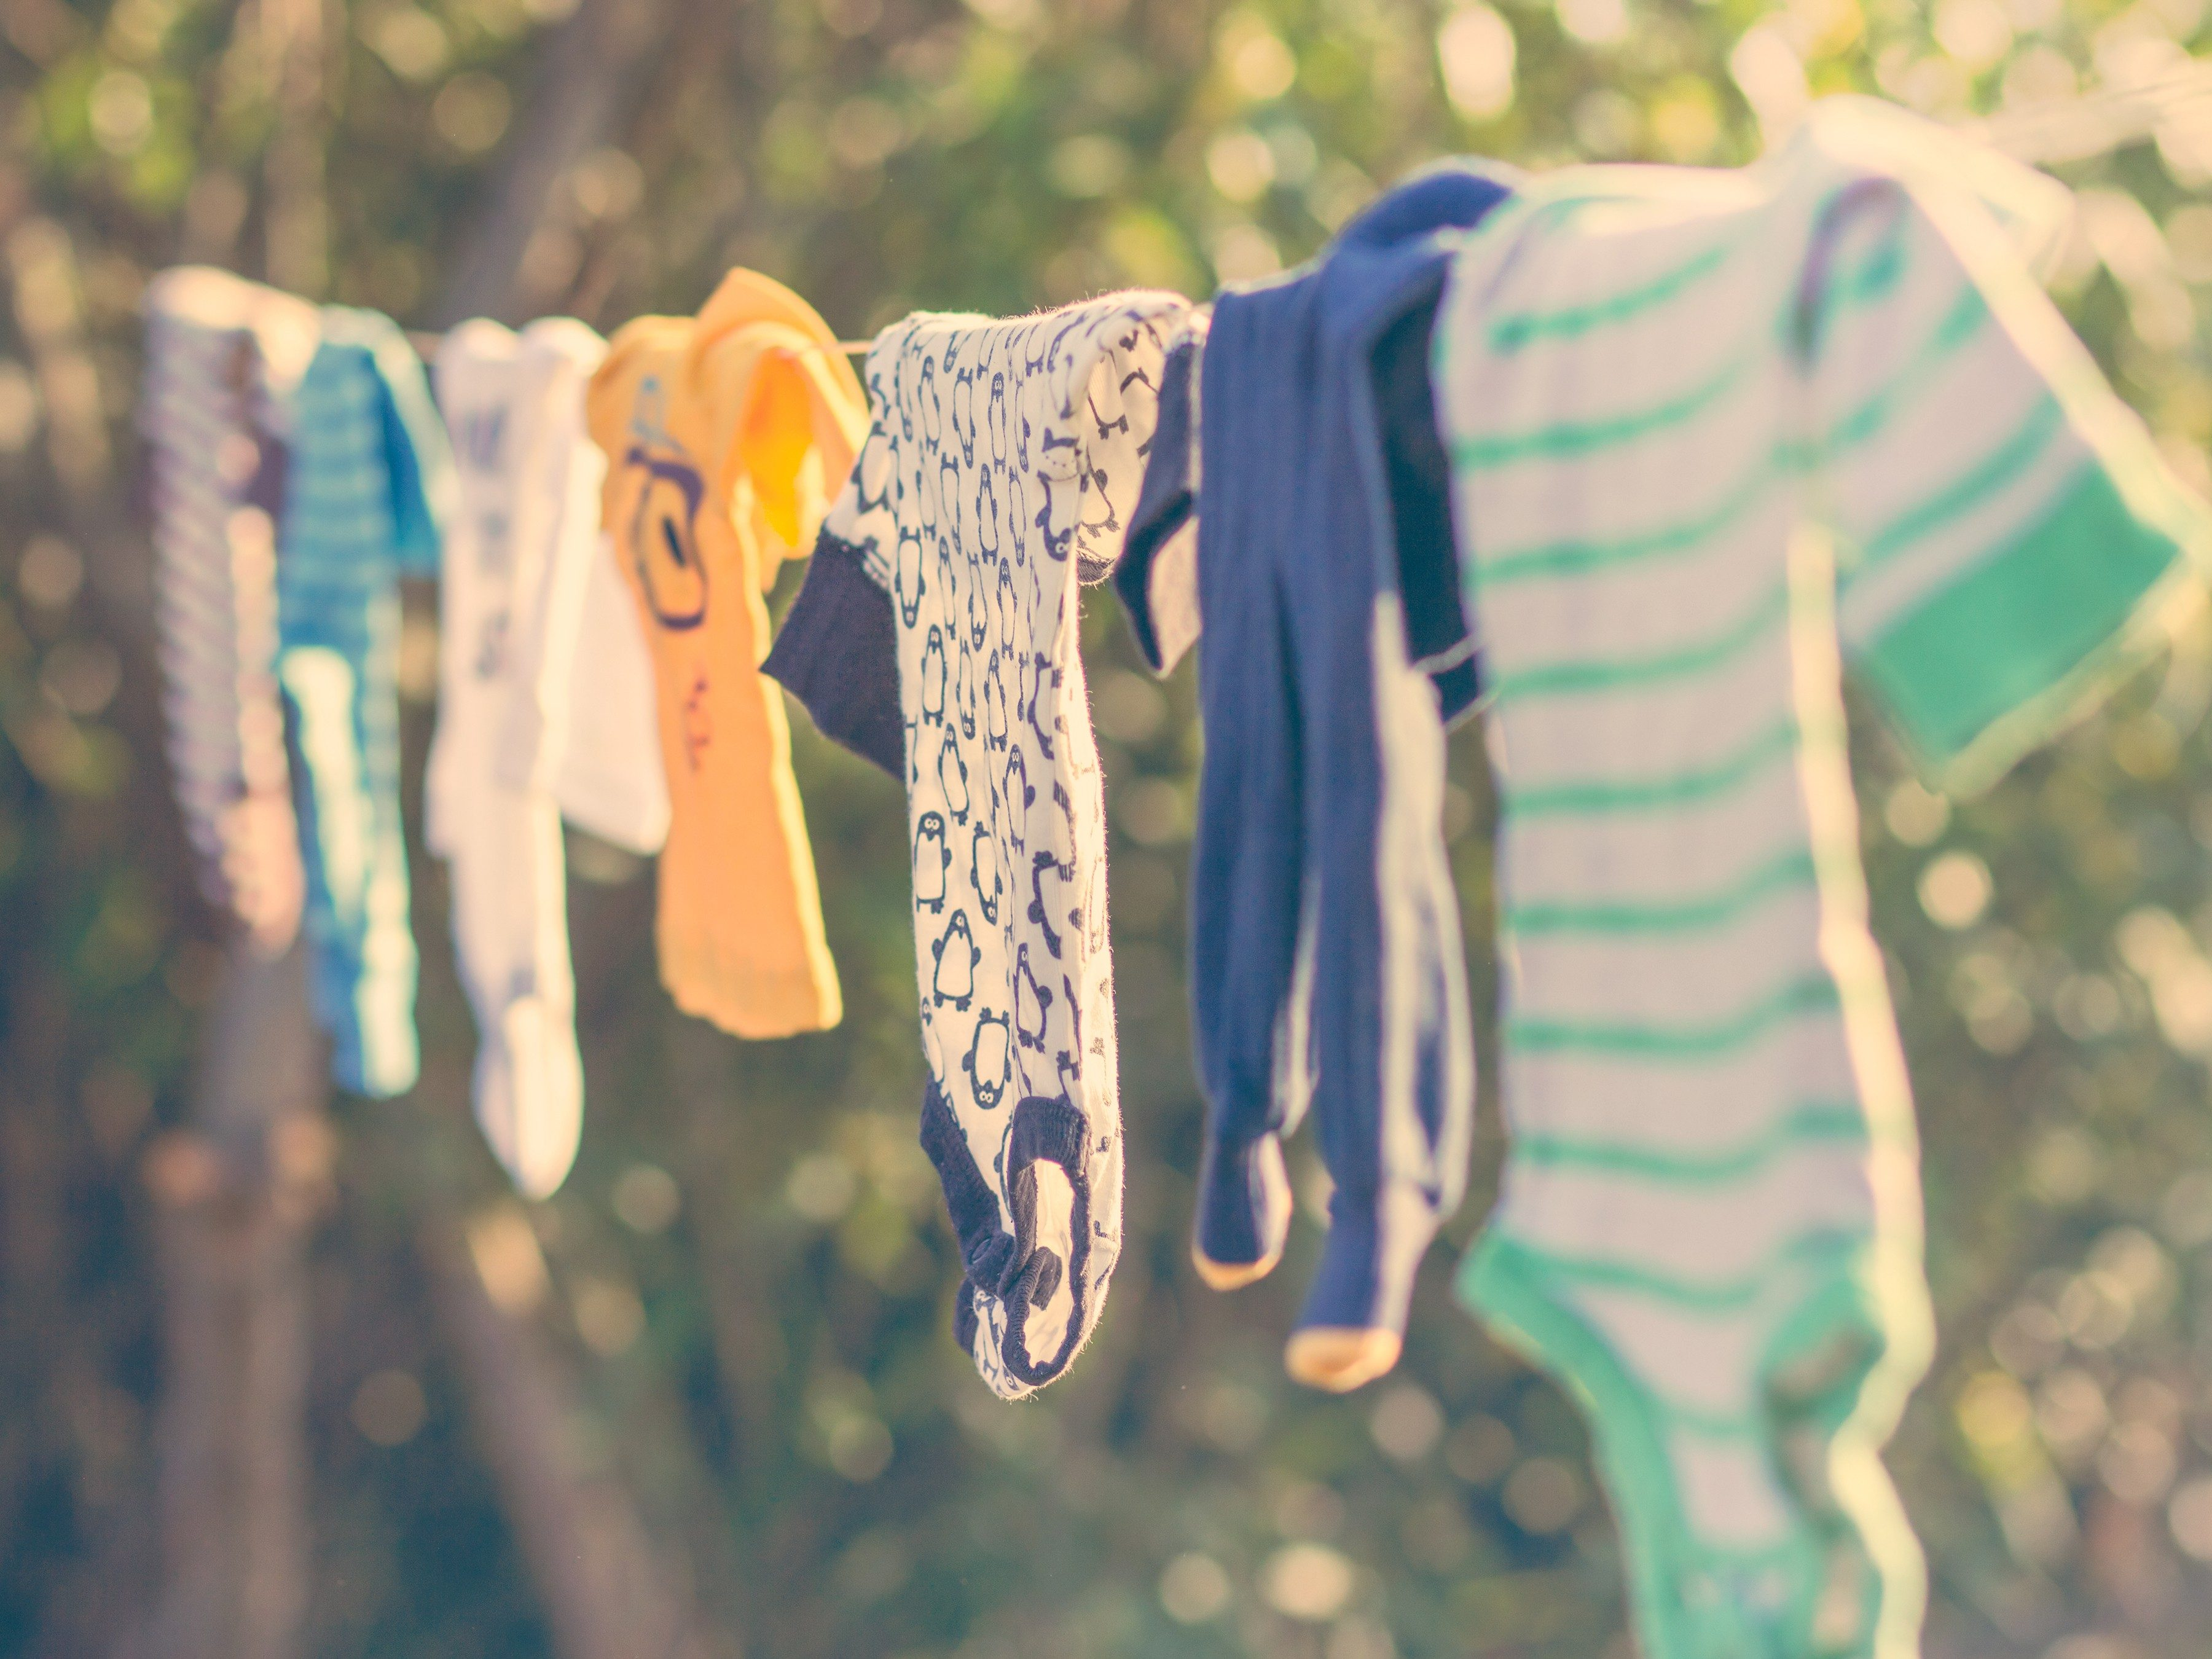 10. Make an Improv Drying Rack